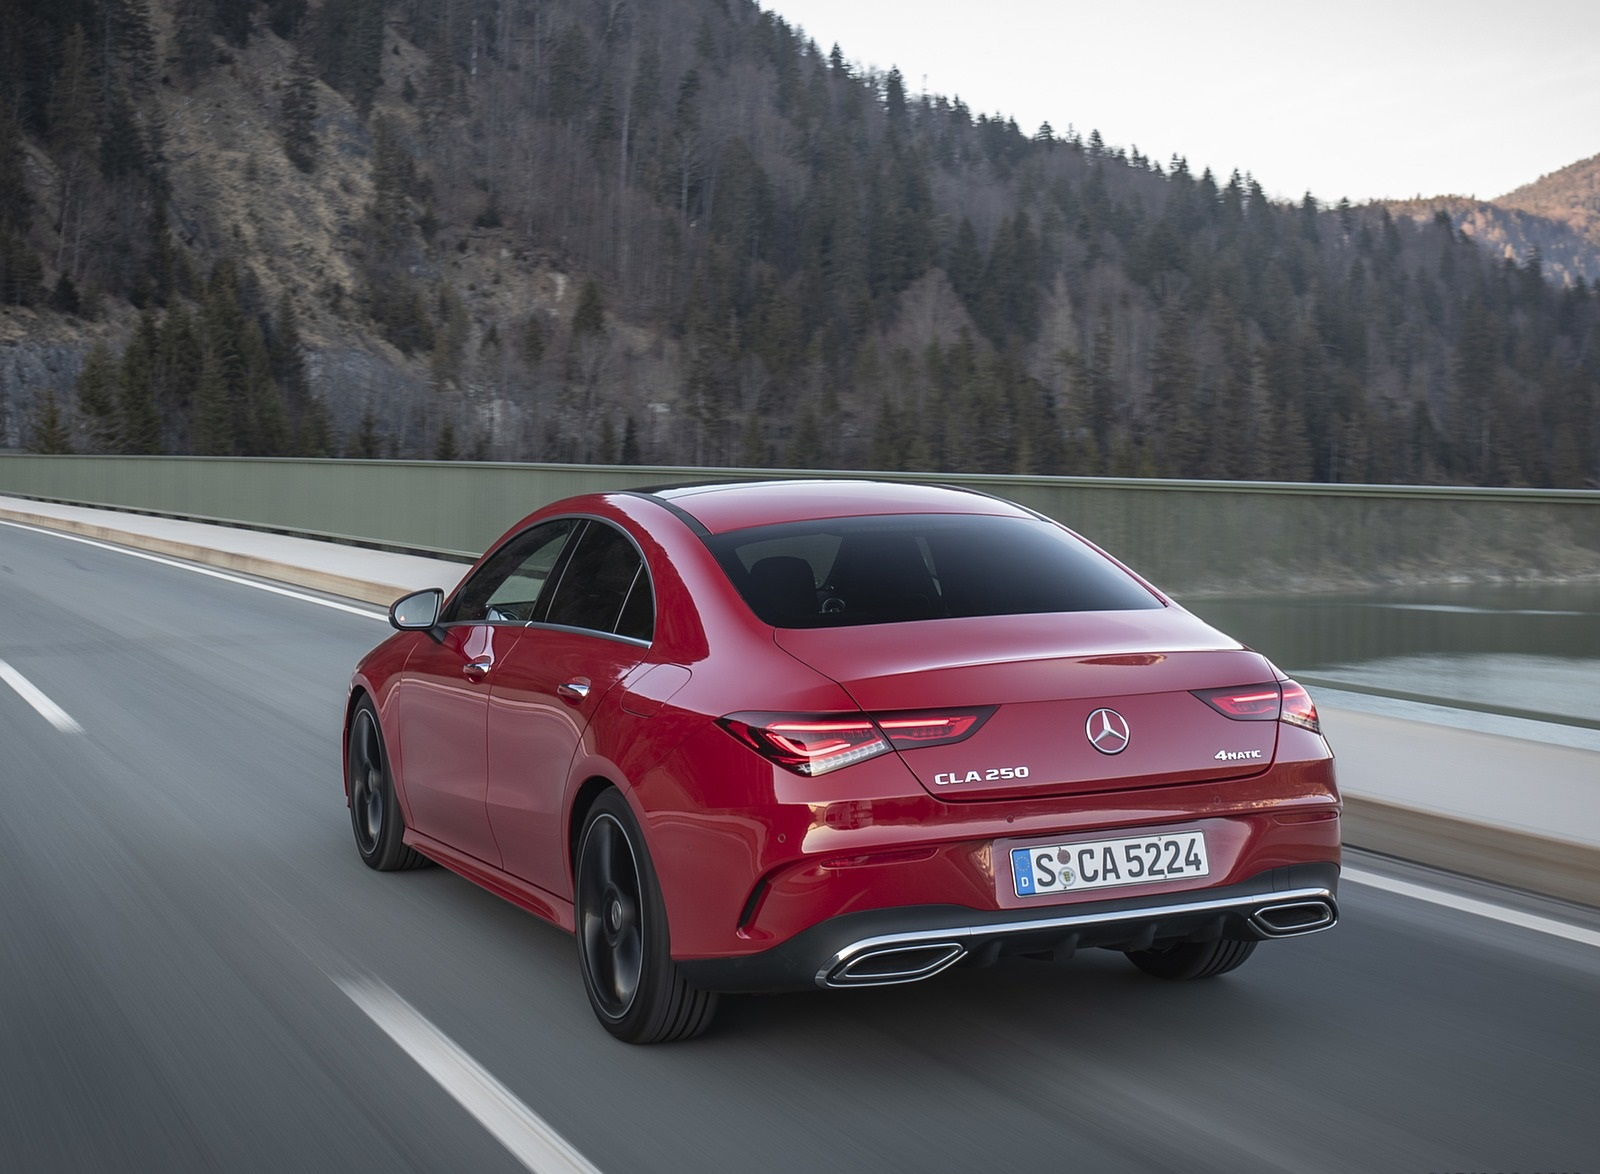 2020 Mercedes-Benz CLA 250 4MATIC Coupe AMG Line (Color: Jupiter Red) Rear Three-Quarter Wallpapers (5)